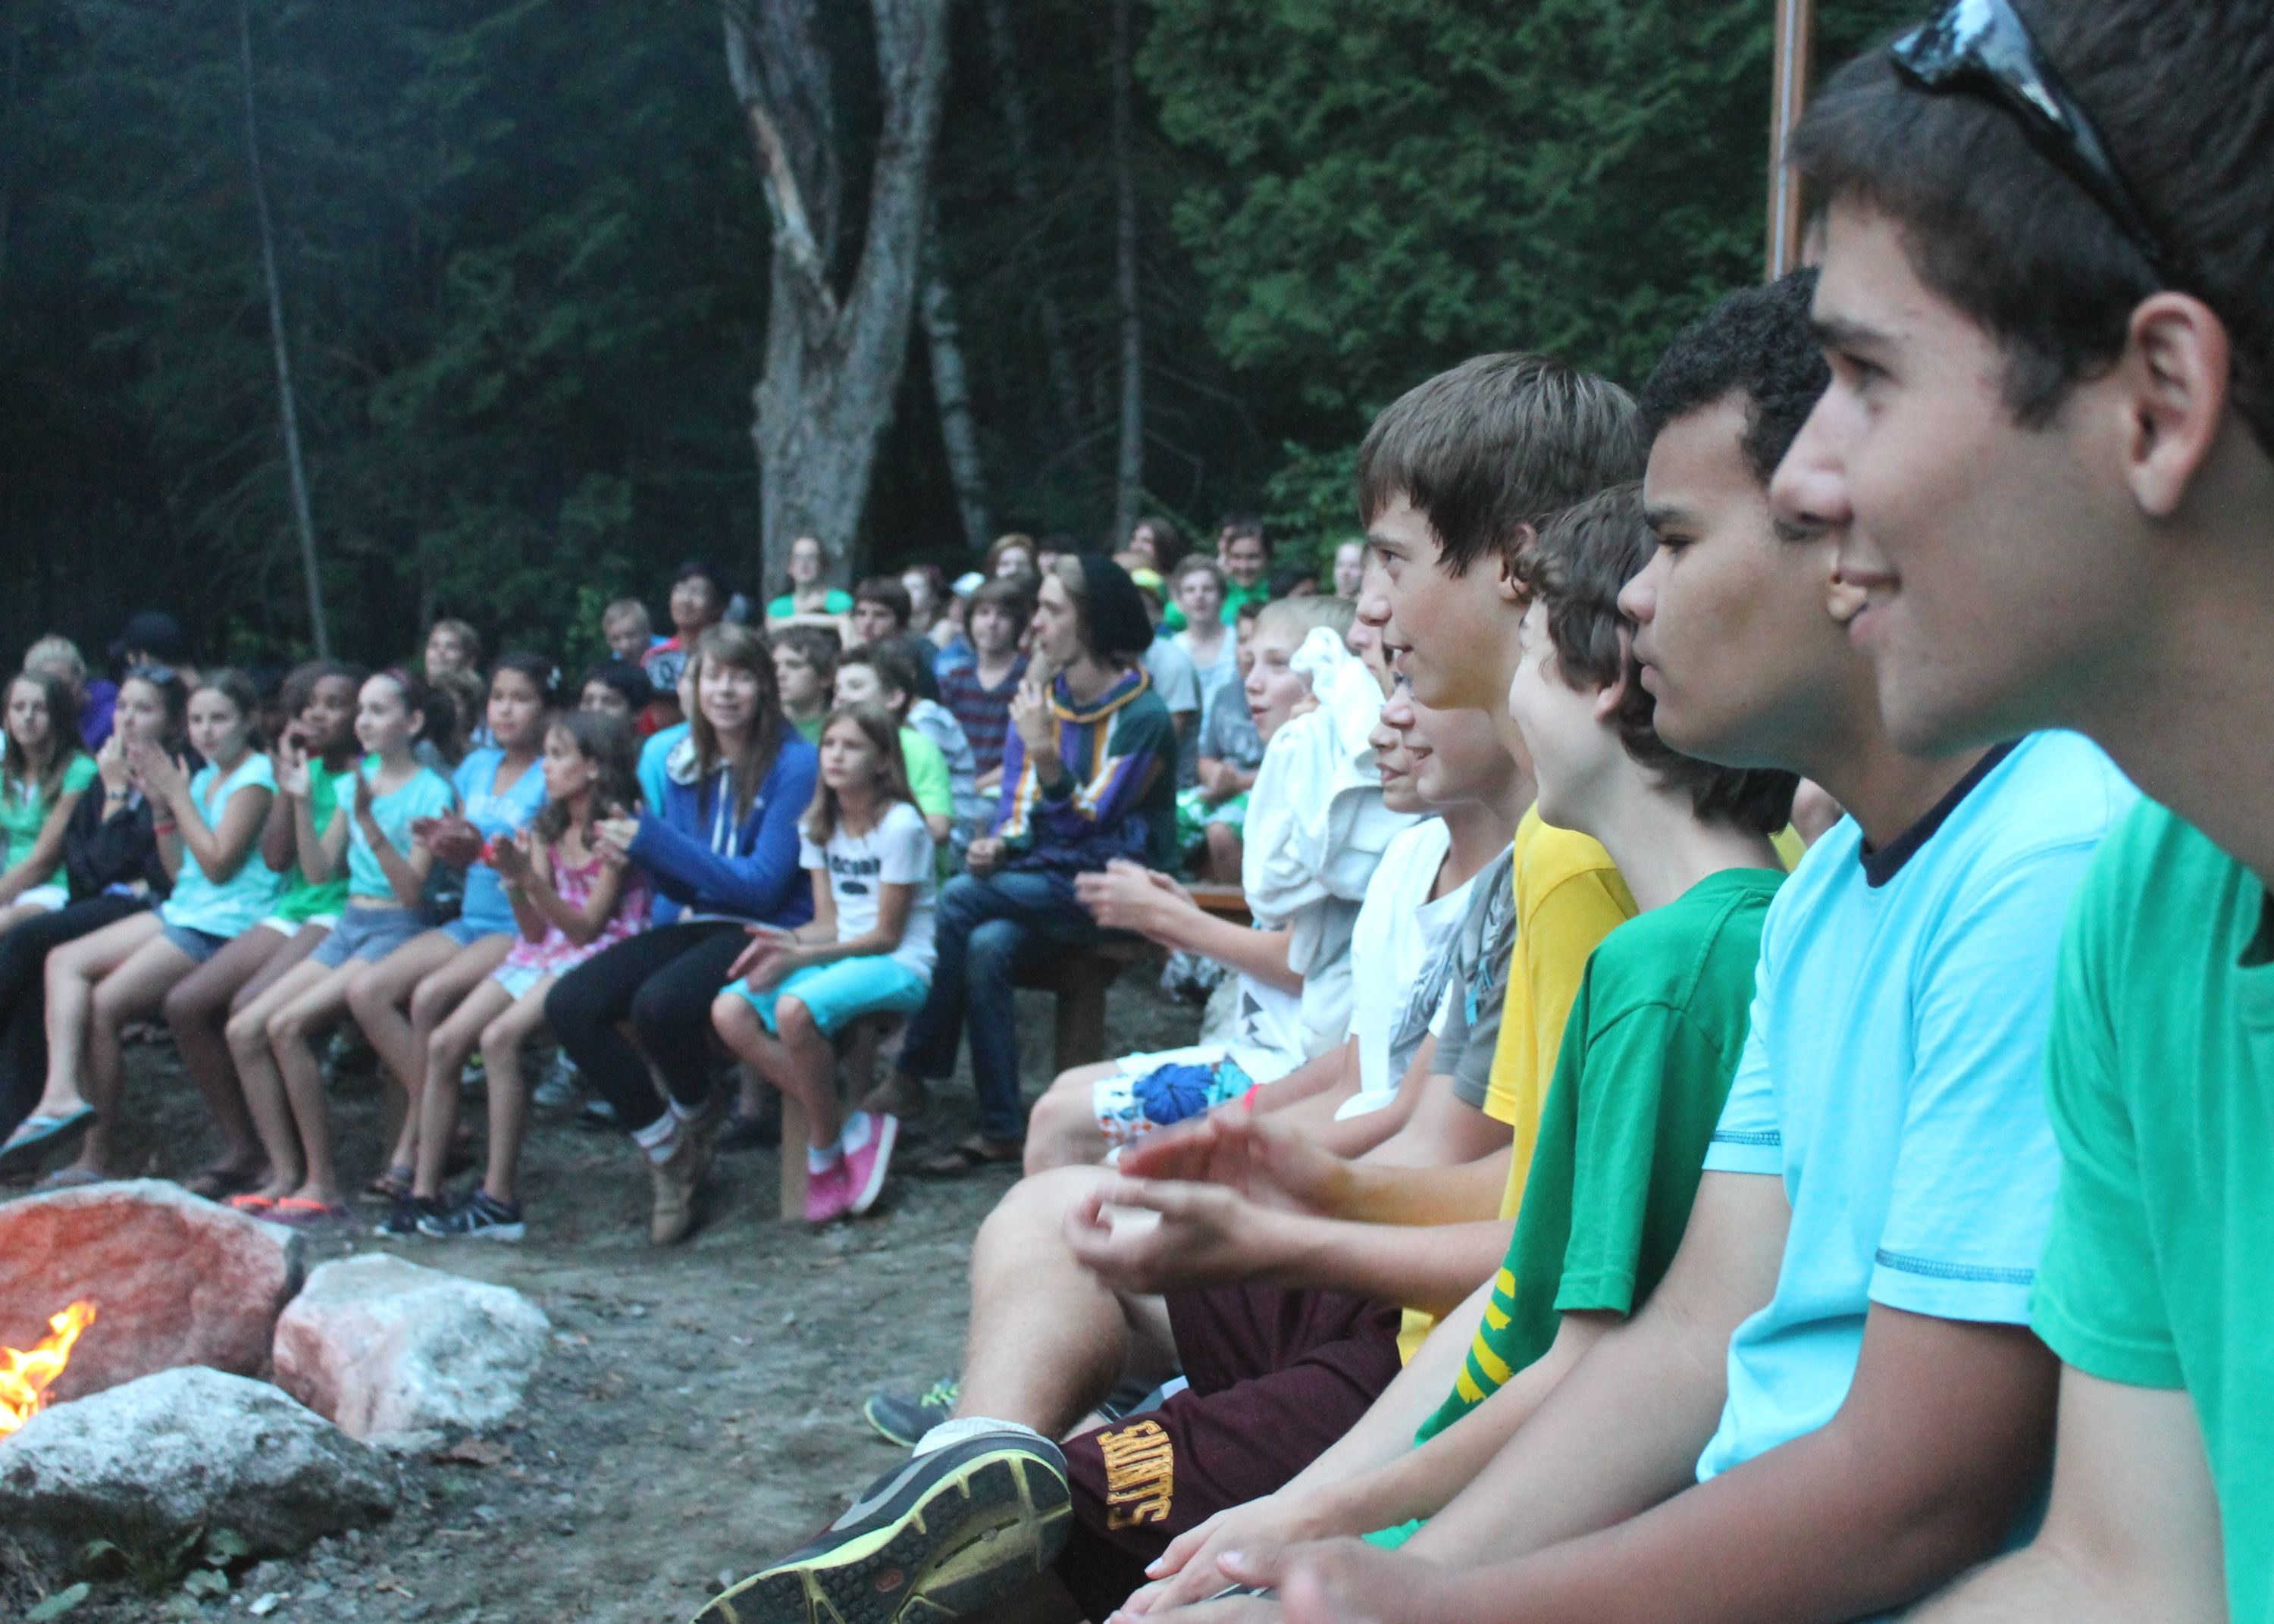 Campers sitting around a campfire at night watching skits and songs at christian adventure summer camp in haliburton, ontario